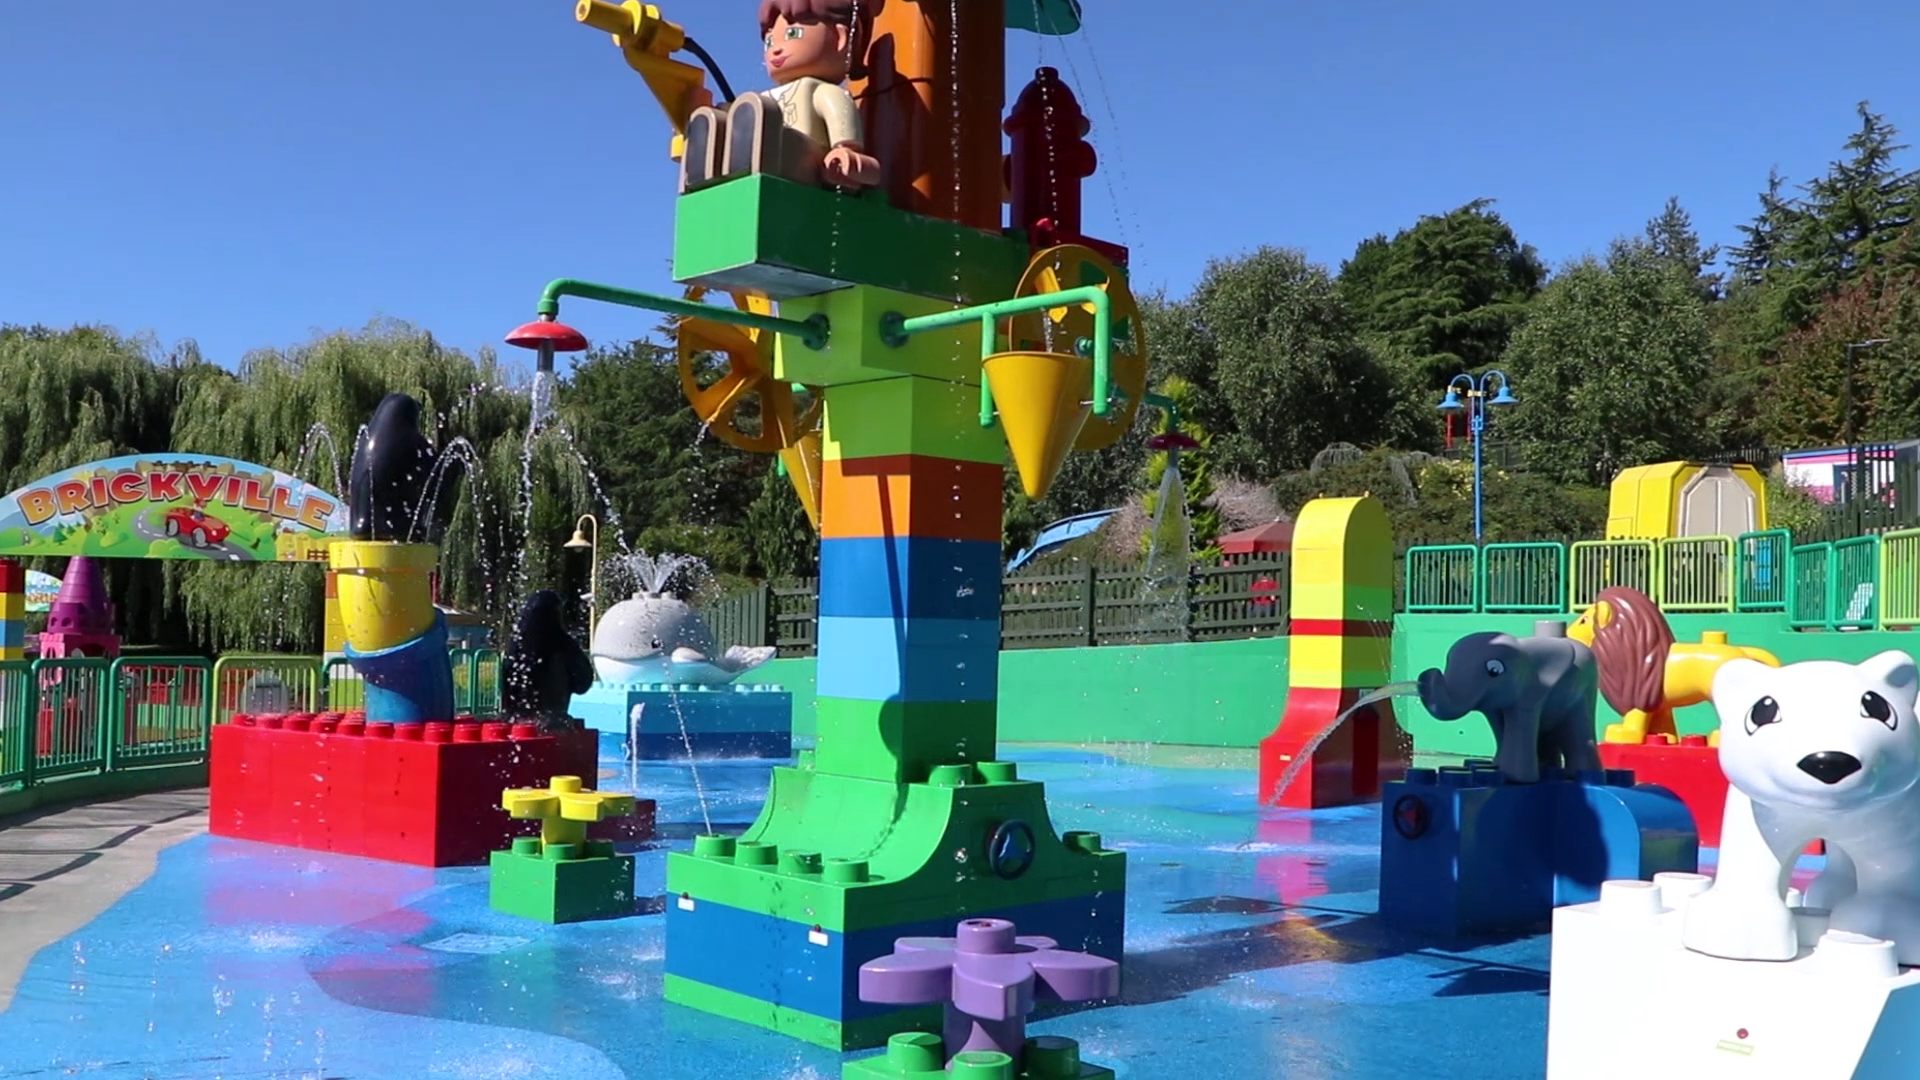 You will not need a lot of convincing to go to Legoland Resort Windsor, one of the most popular things to do in Surrey.